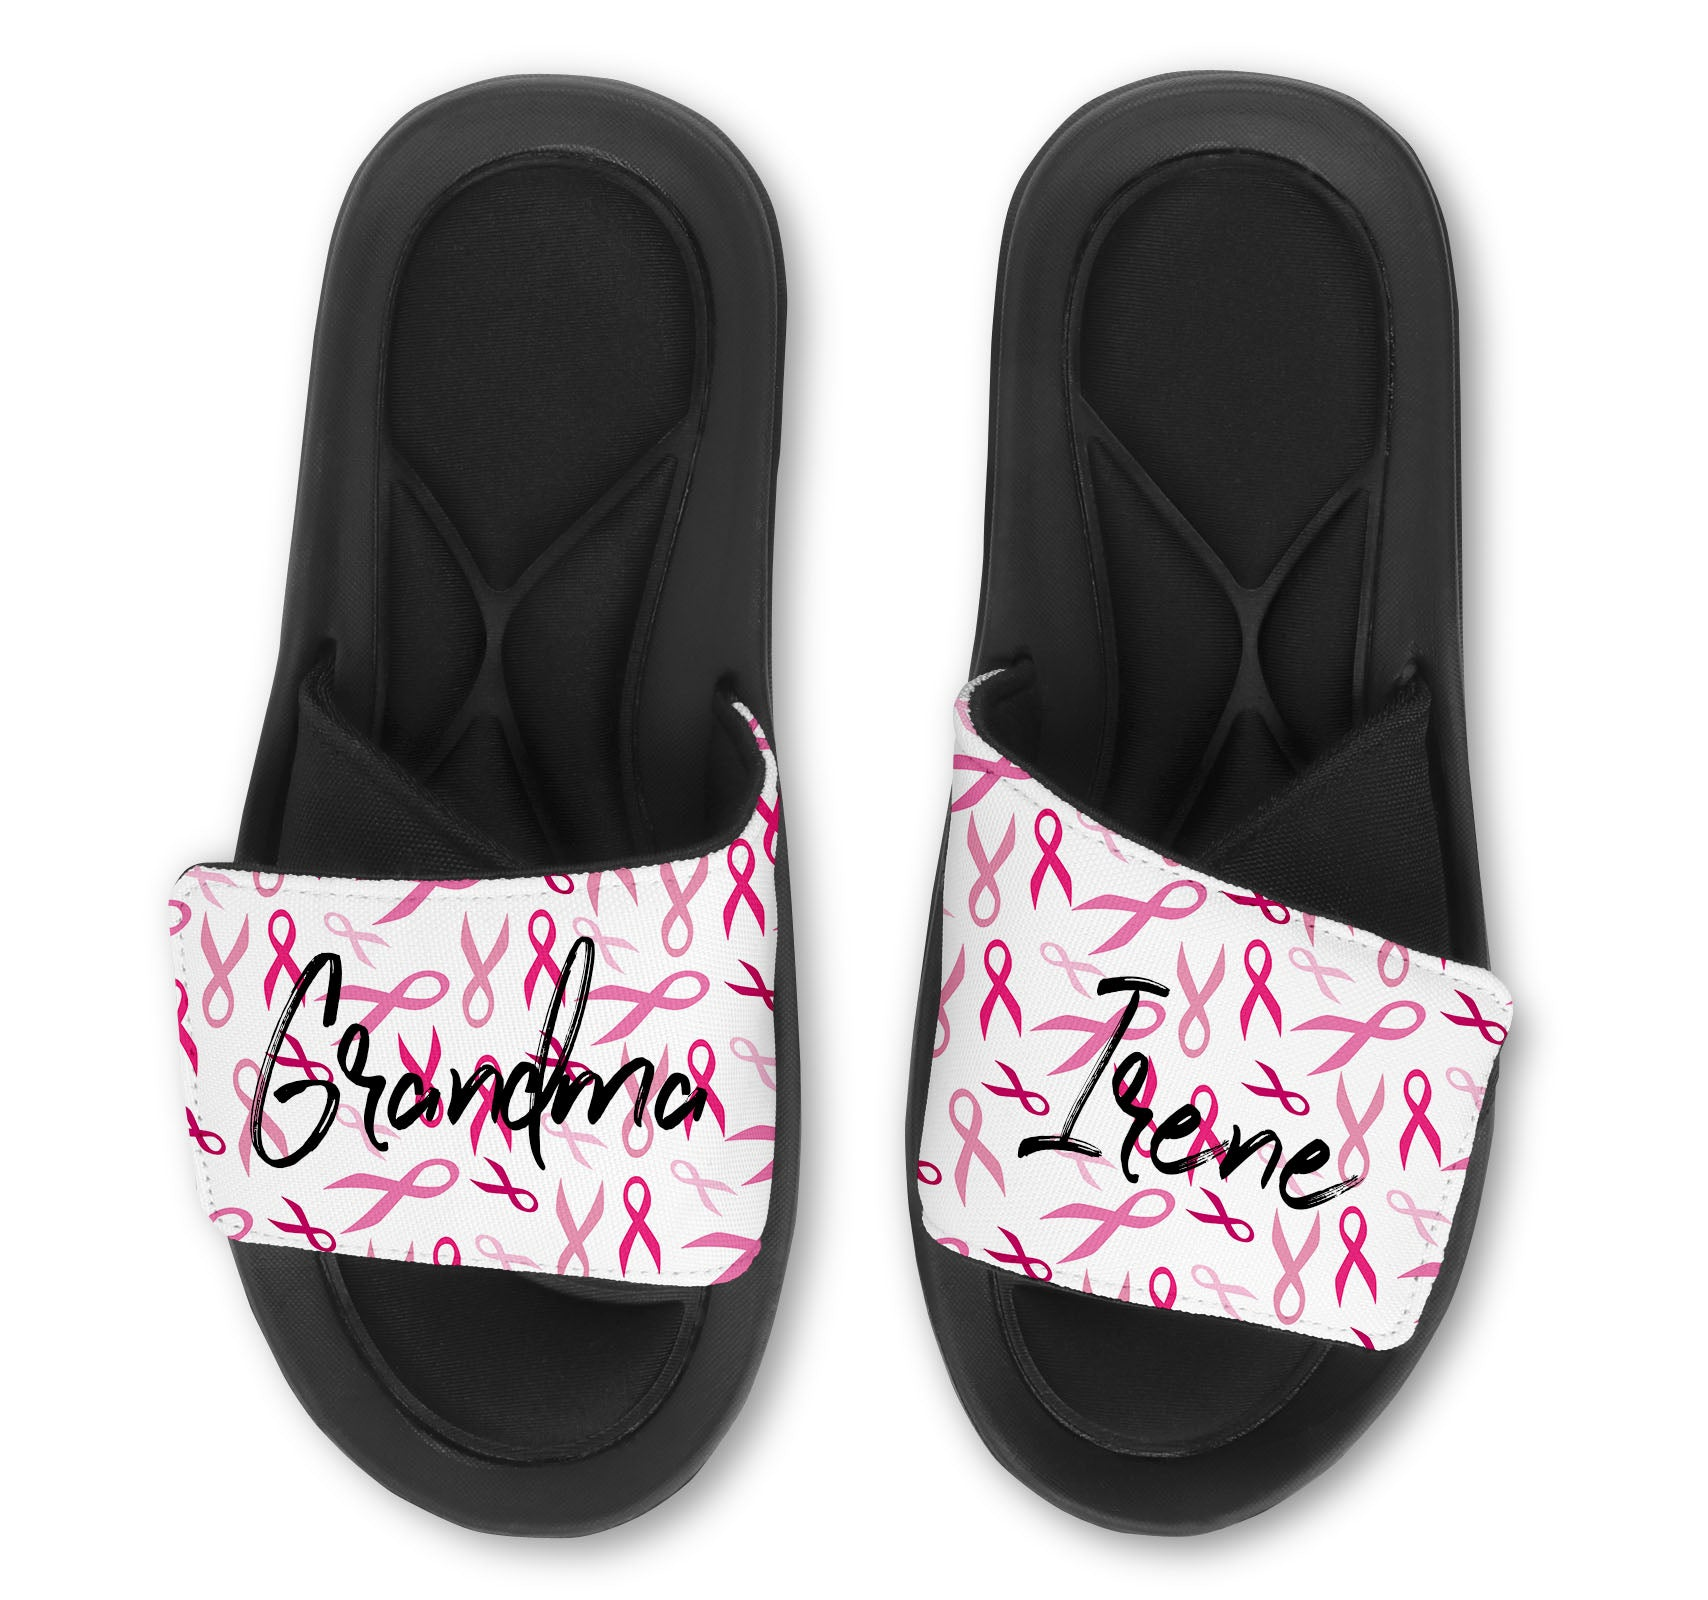 Breast Cancer Awareness Slides - Customize with Your Name